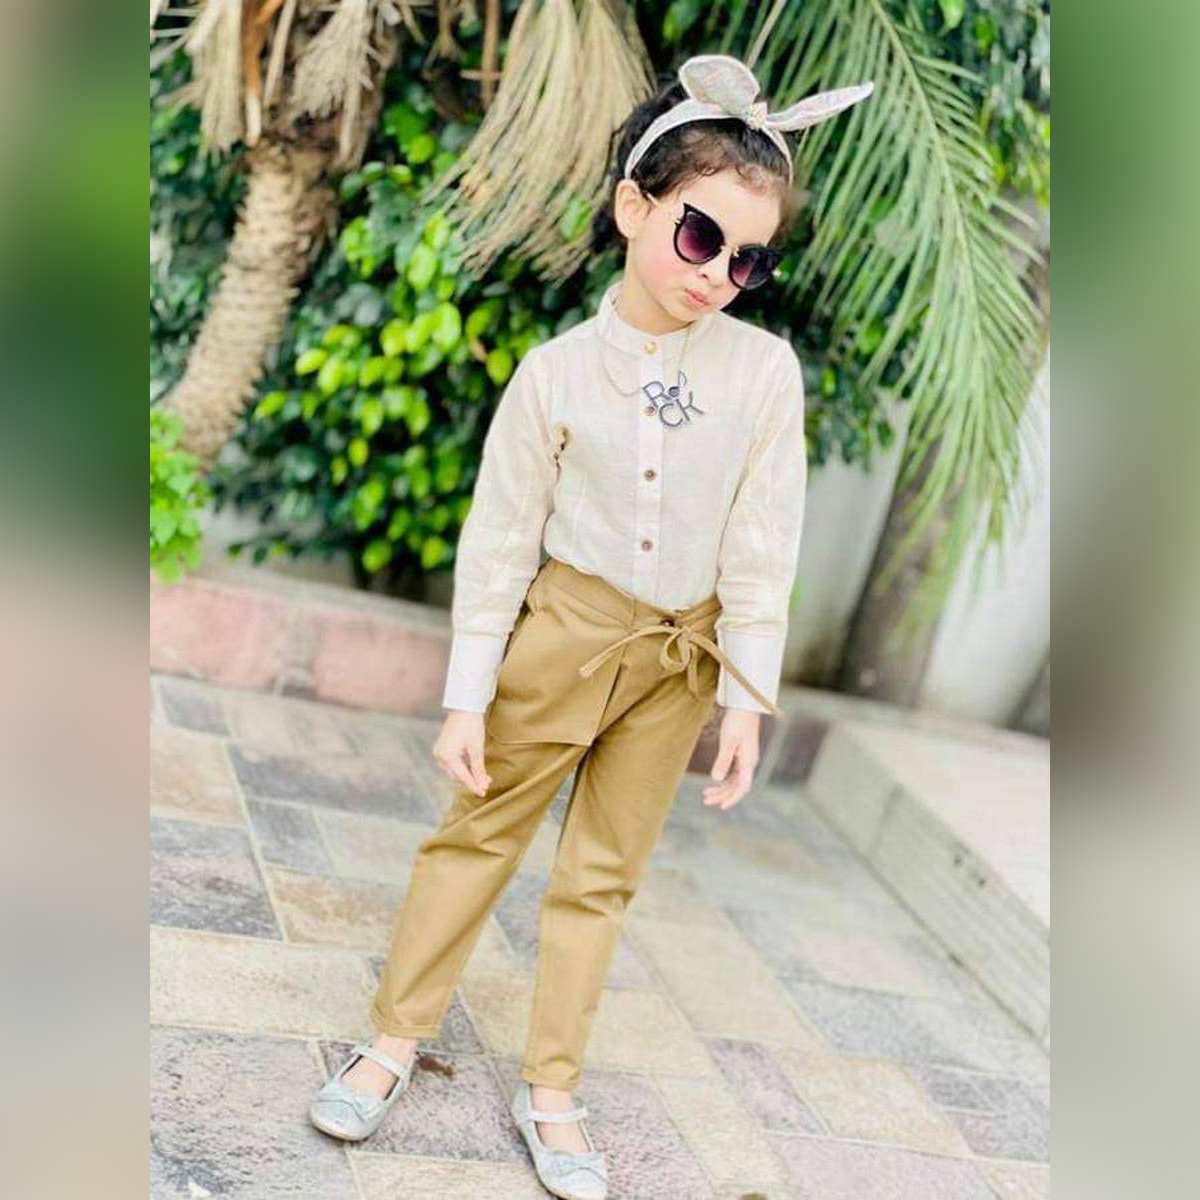 Kidzania 3-Piece Shirt + Pant for Girl - with Inner Camisole -   Button style shirt, dress for Girls - Cotton stuff - Maasori shirt - Spring Summer Collection